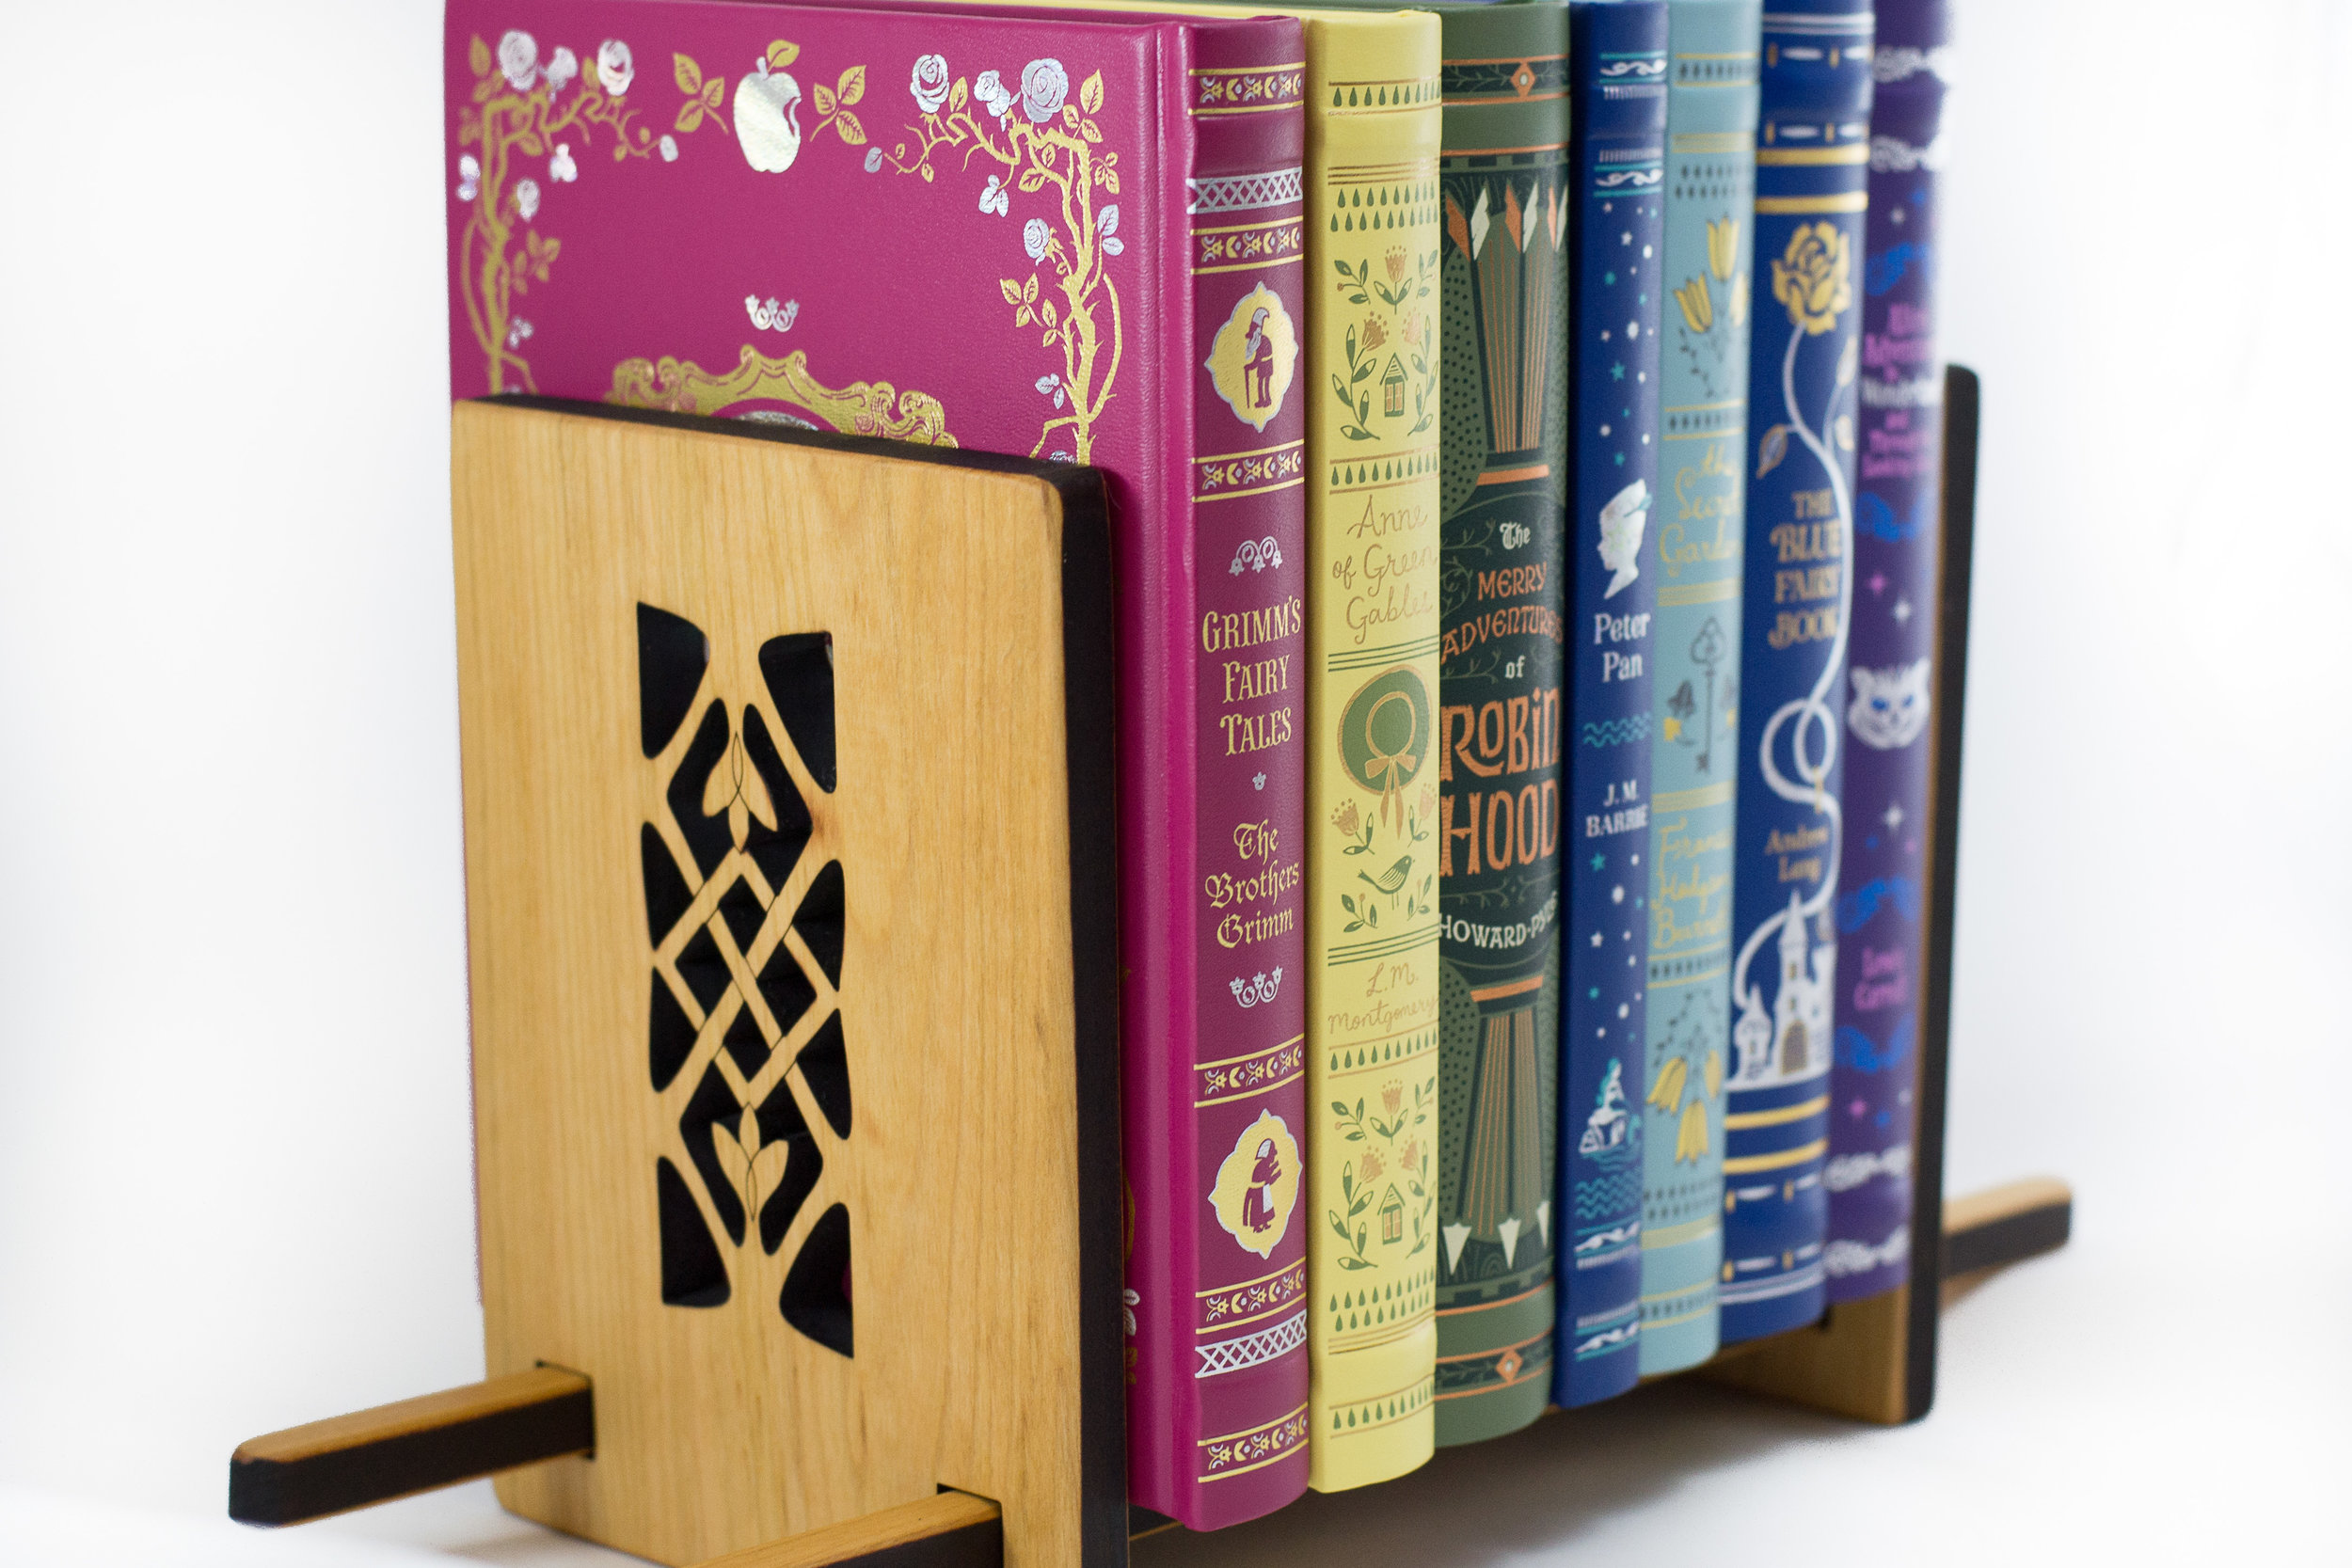 2. Sliding Book Stand - Keeps a few (or a few more) favorite books on hand. Adjusts to hold what is necessary. It's a small freestanding bookshelf.